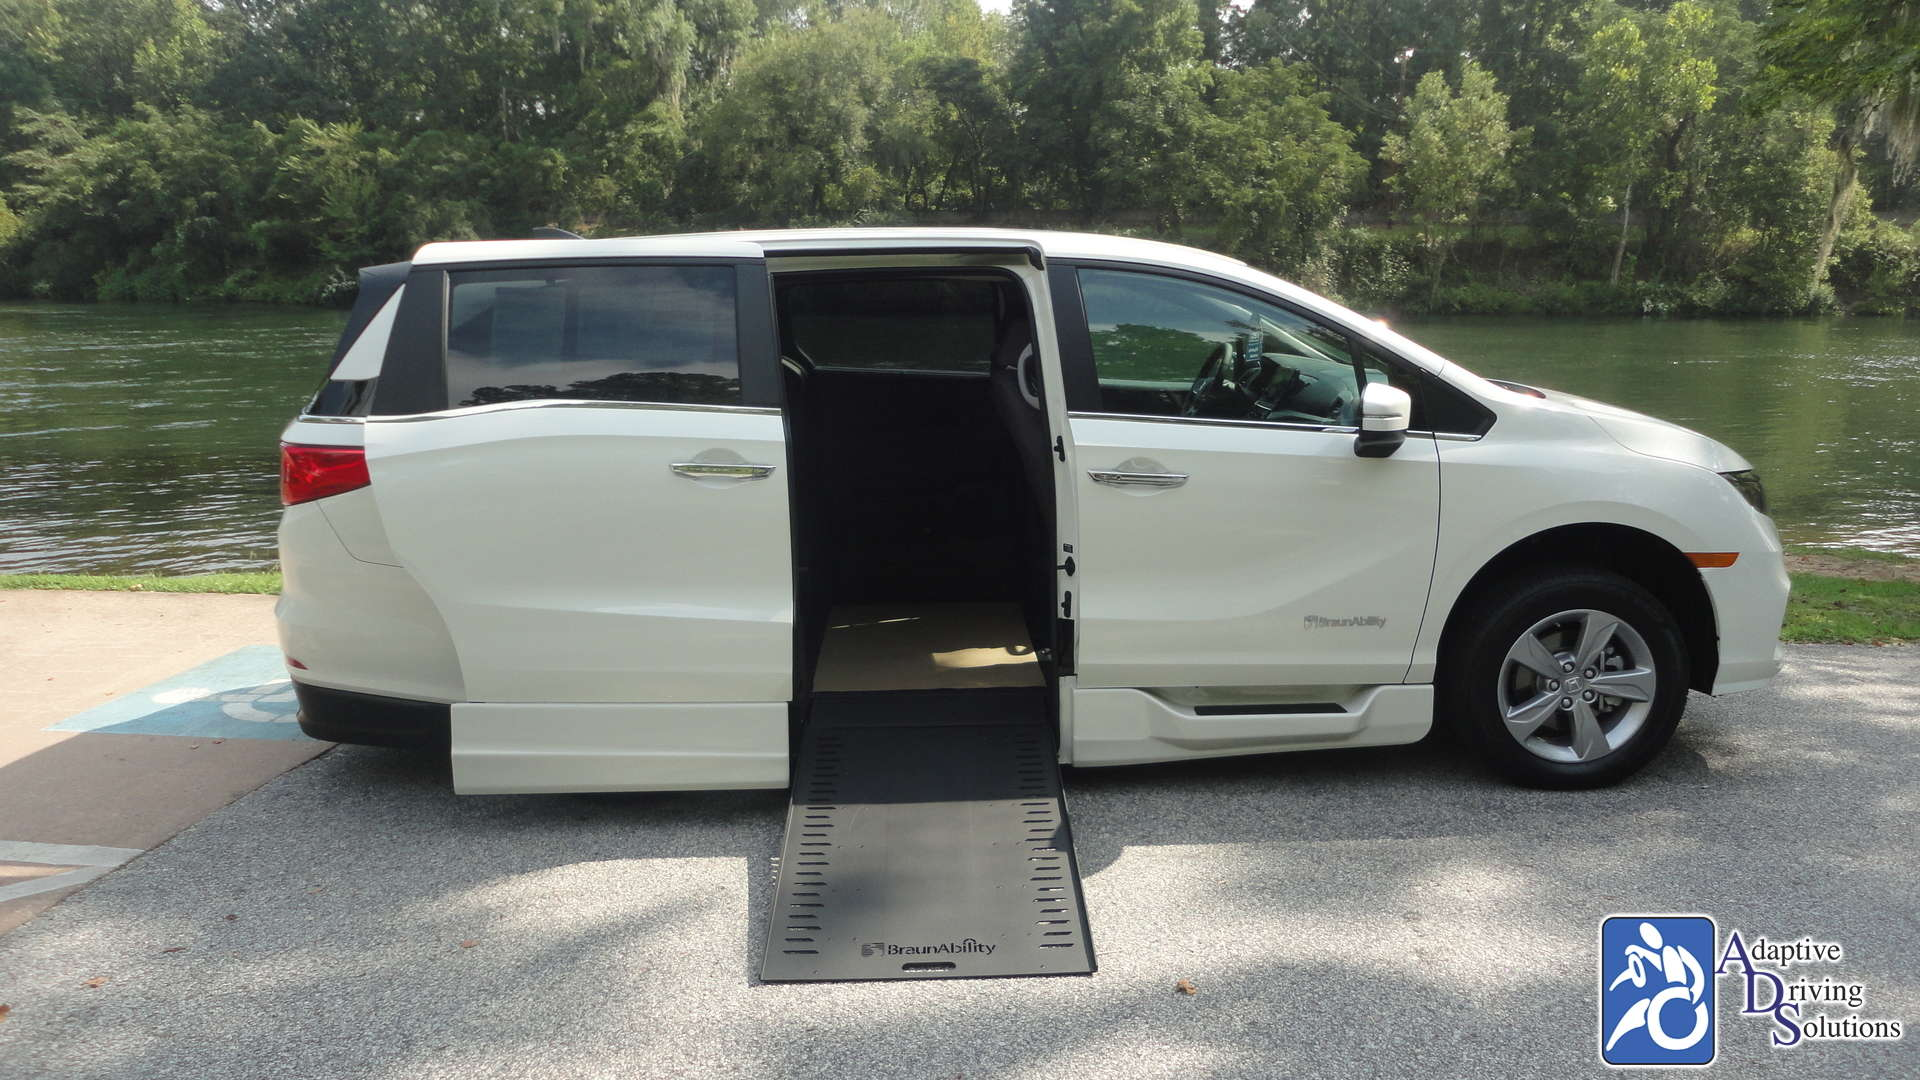 Adaptive Driving Solutions BraunAbility Honda Power lnfloor  Gallery Image